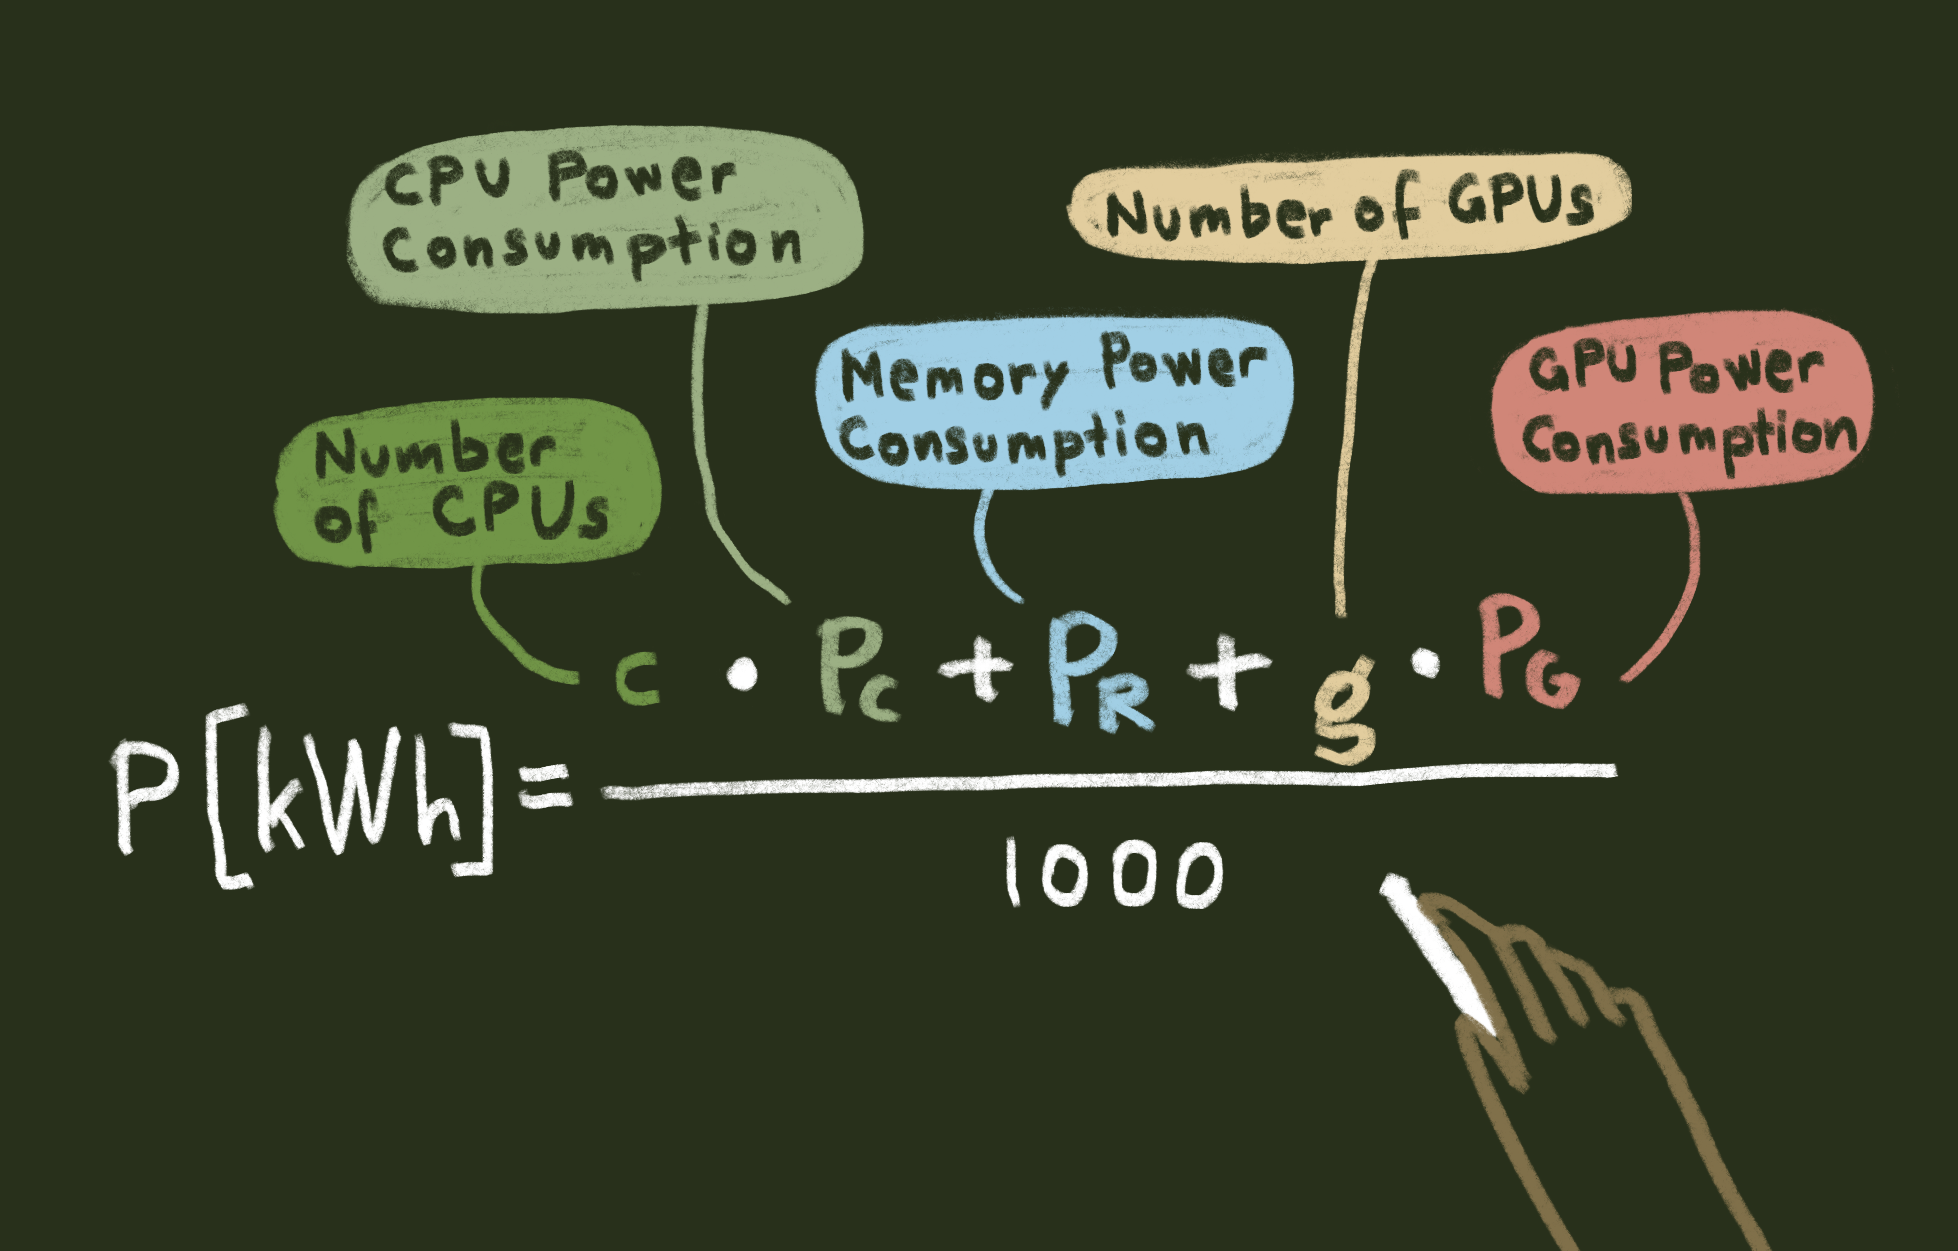 A mathematical formula. Power, in kilowatt, equals the number of CPUs times the Power consumption of the CPU plus the power consumption of the memory + the number of GPUs times the power consumption of GPUs and divide it all by 1000.